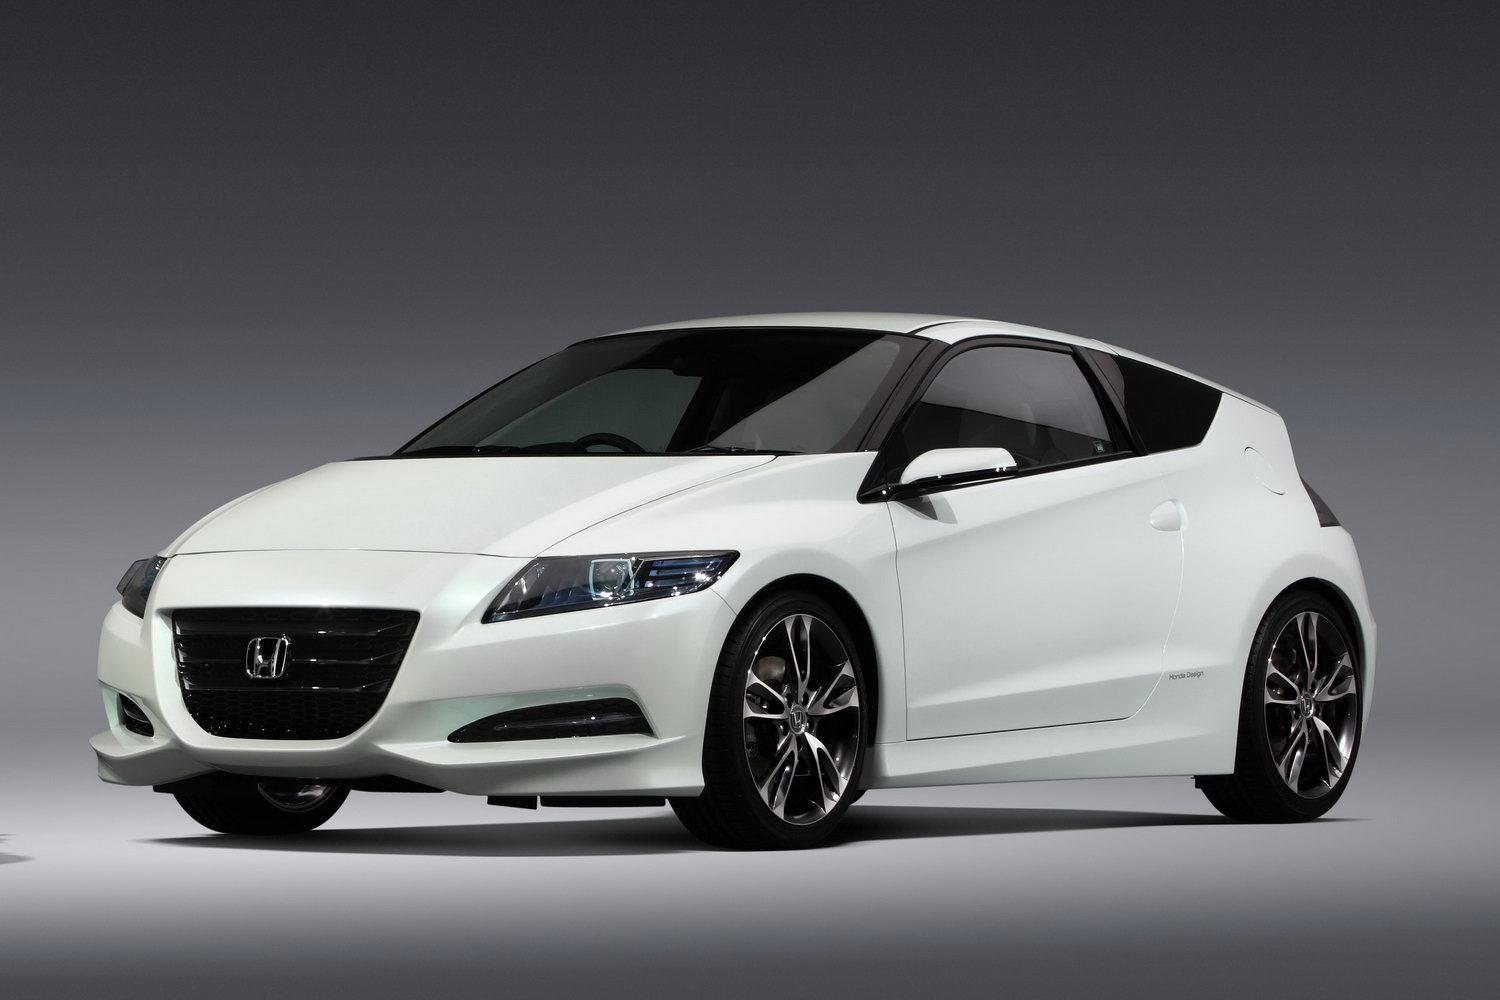 Honda-cr-z-hybrid-car-desktop-wallpaper